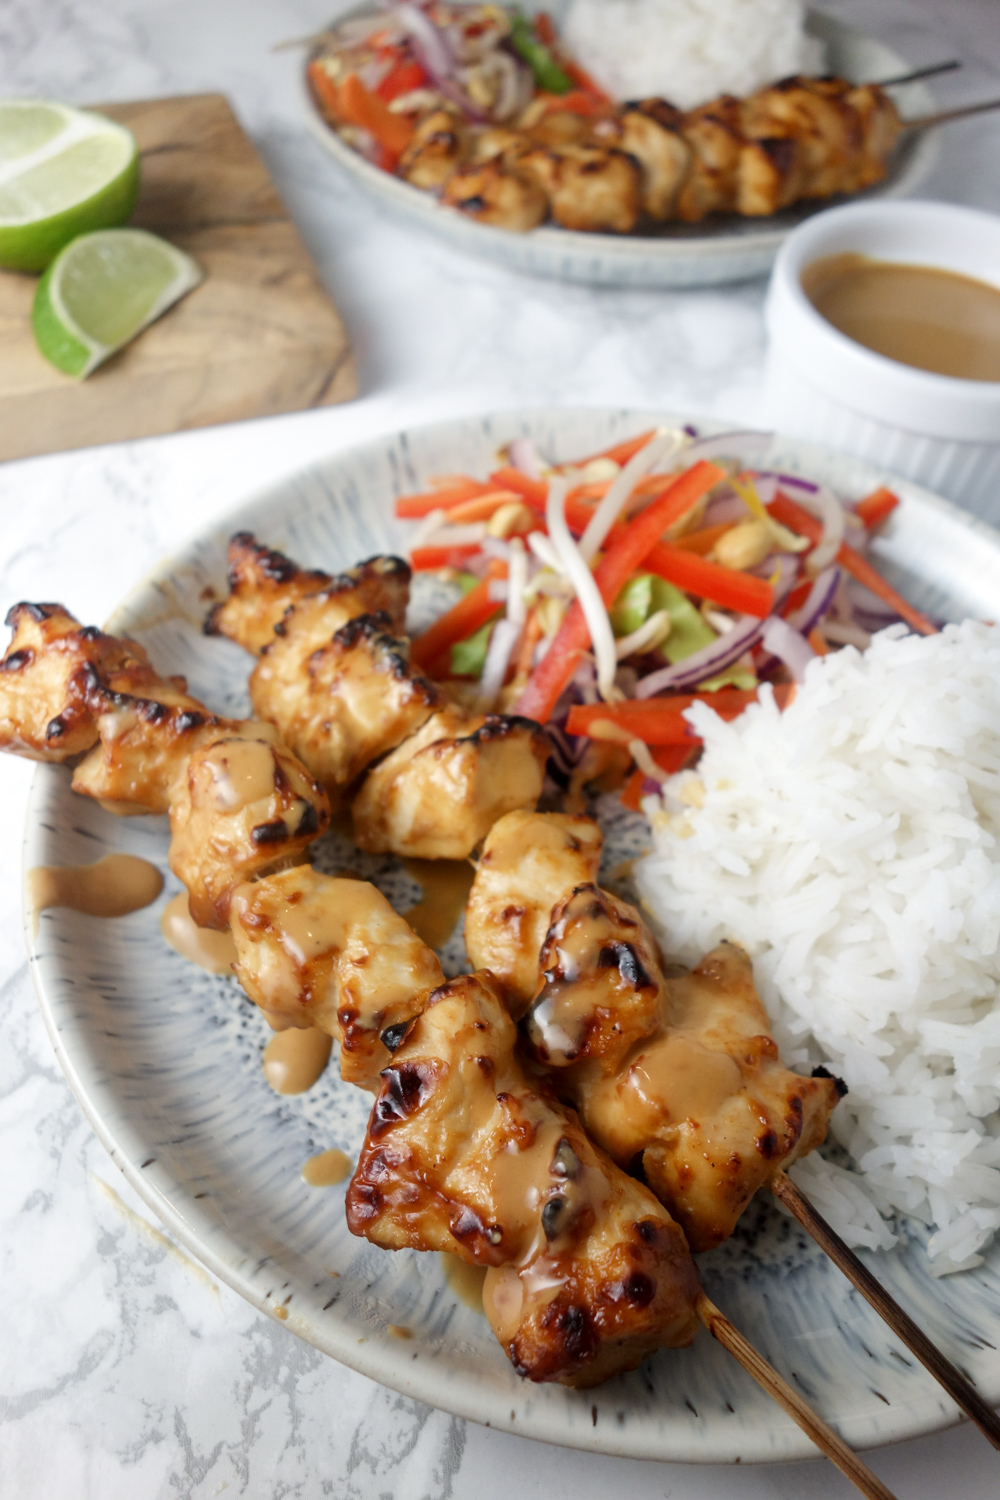 A quick & easy recipe for chicken satay skewers with a creamy, nutty peanut dipping sauce. SO tasty!